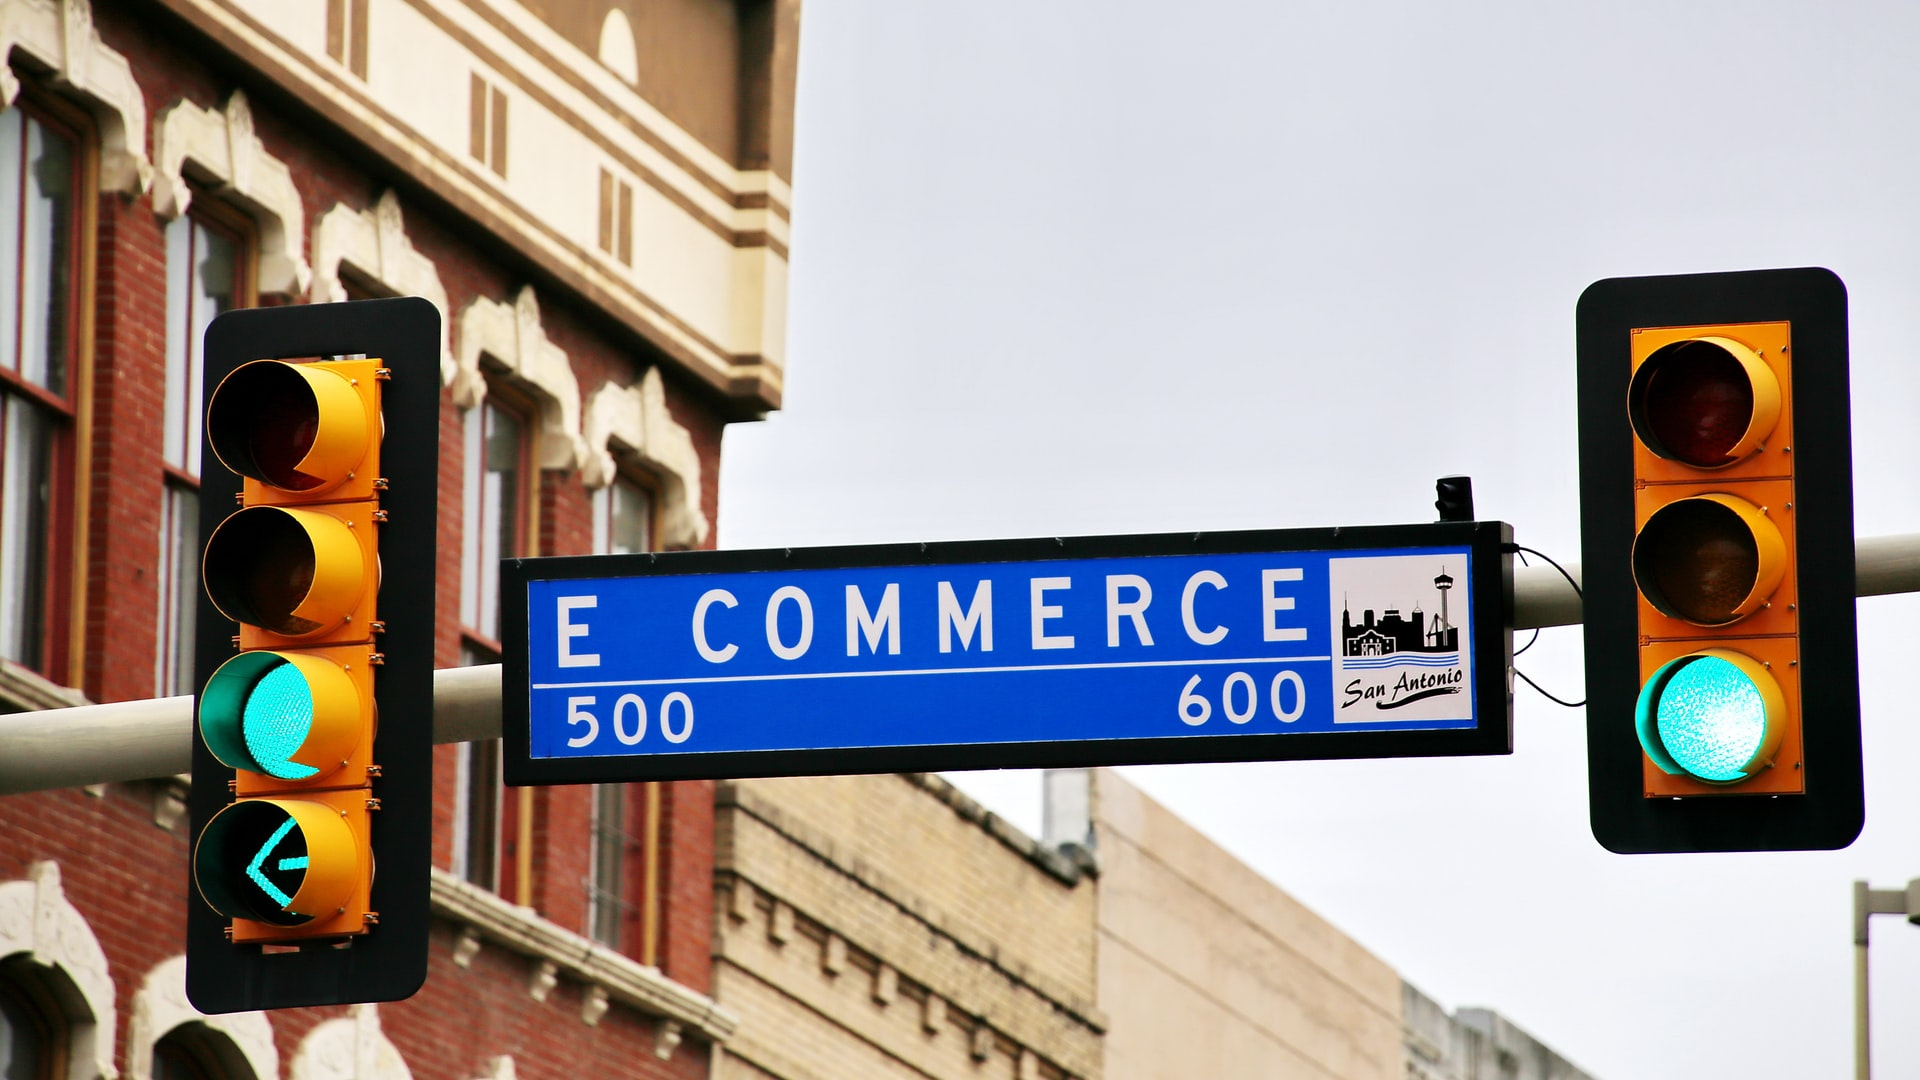 Different Uses of Internet in Ecommerce Businesses